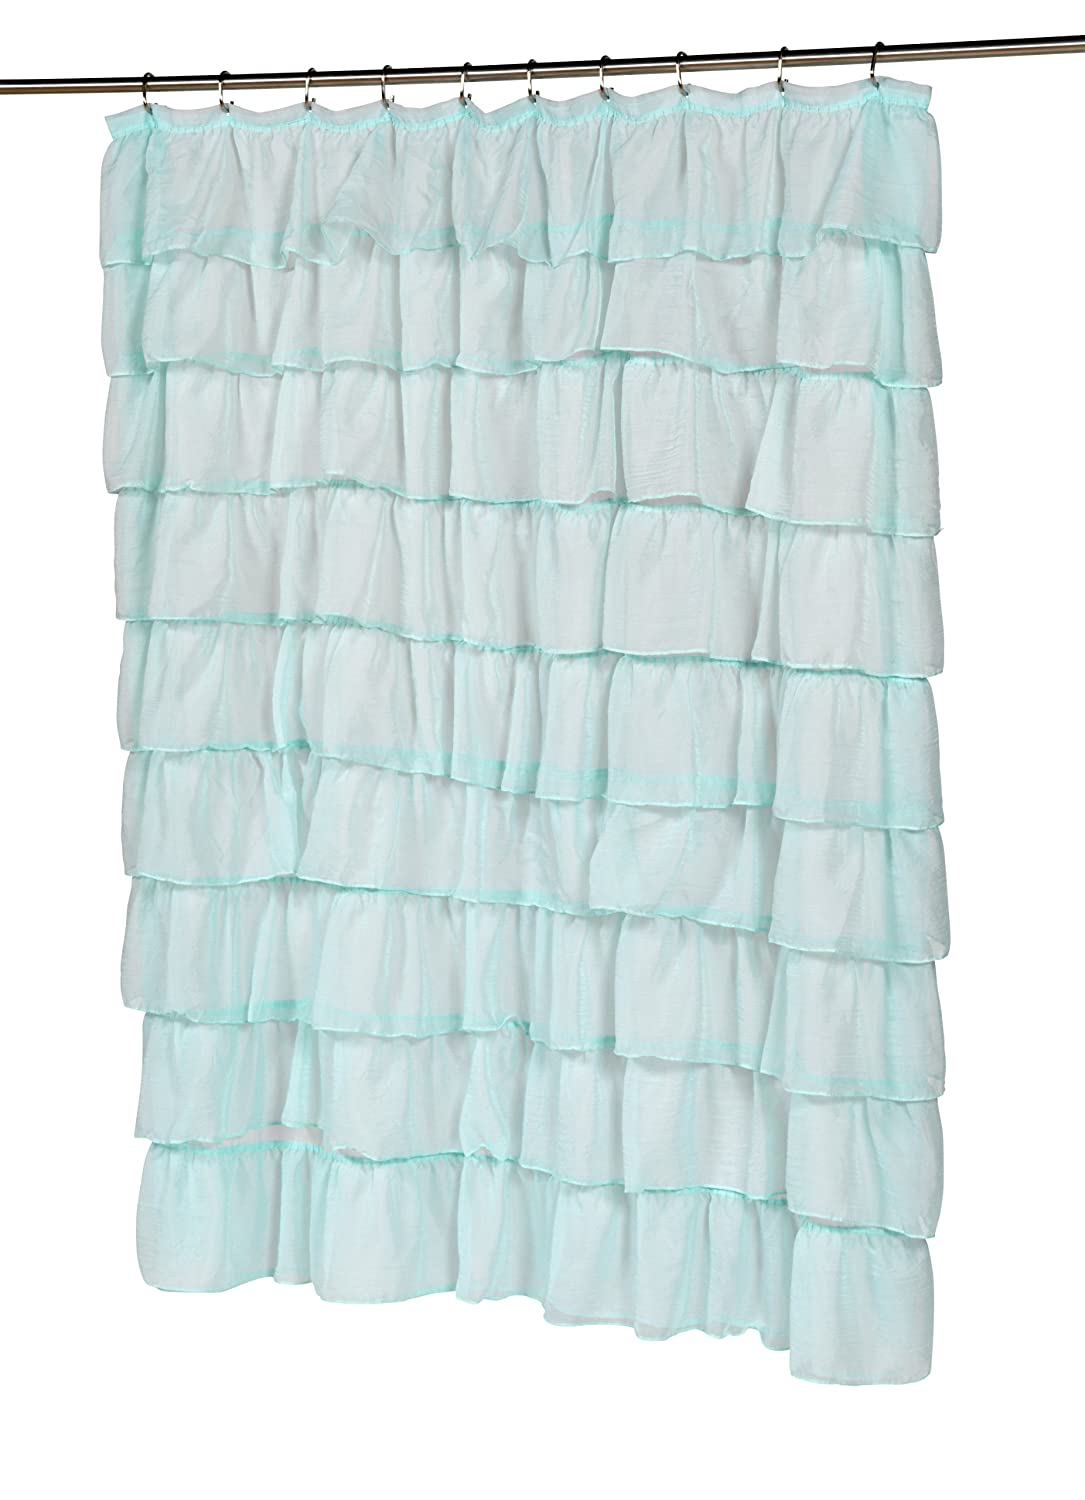 Amazon Carnation Home Fashions Carmen Crushed Voile Ruffled Tier Shower Curtain 70 Inch By 72 InchSpa Blue Kitchen